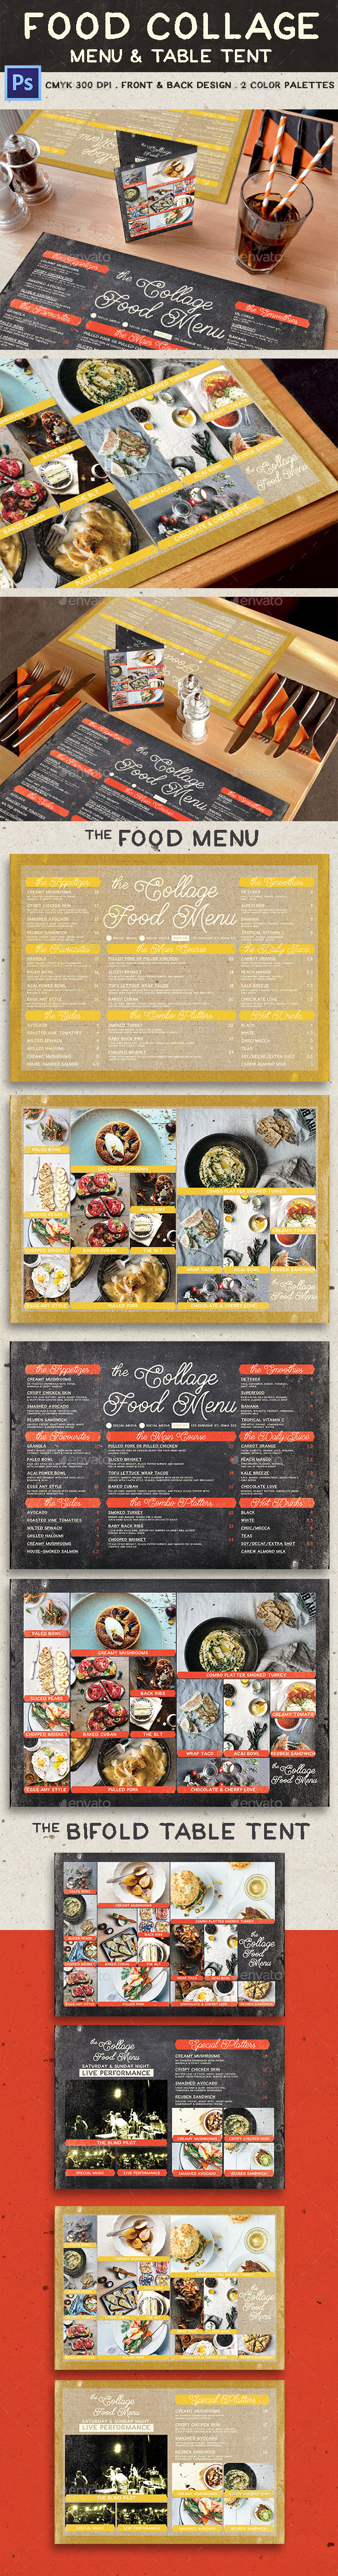 Food Collage Menu